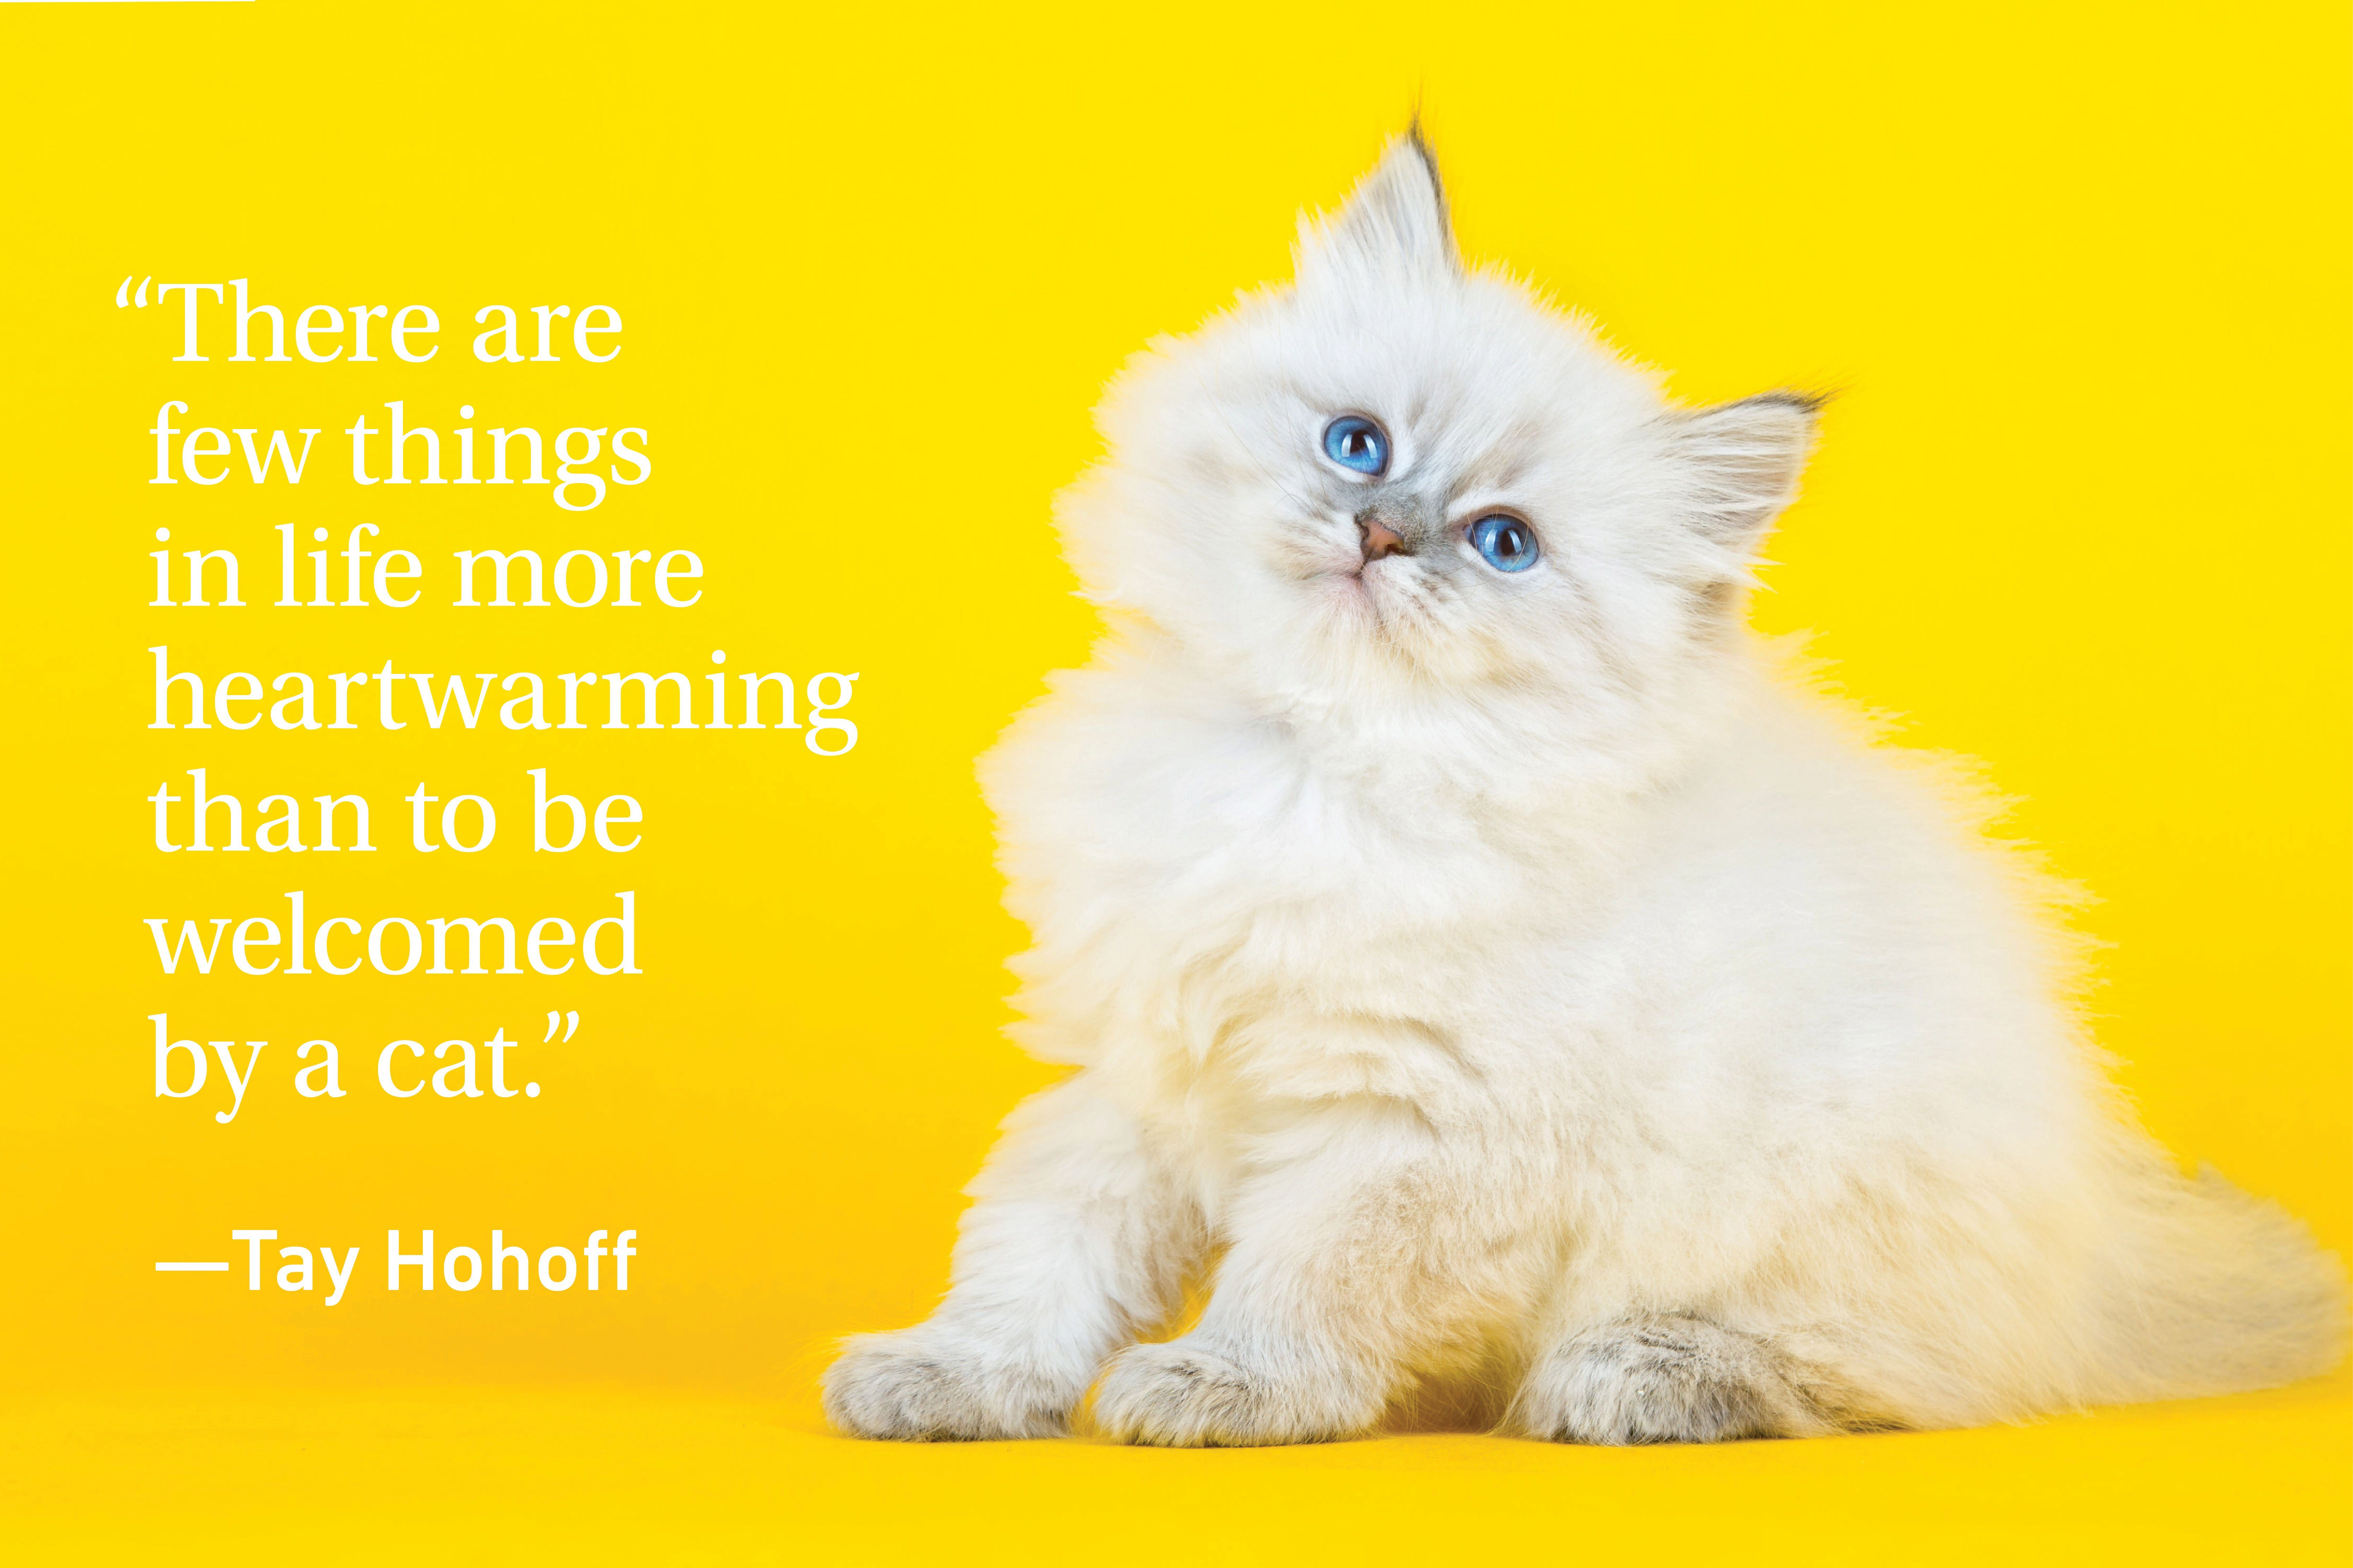 Kitten admiring on a yellow background with a quote